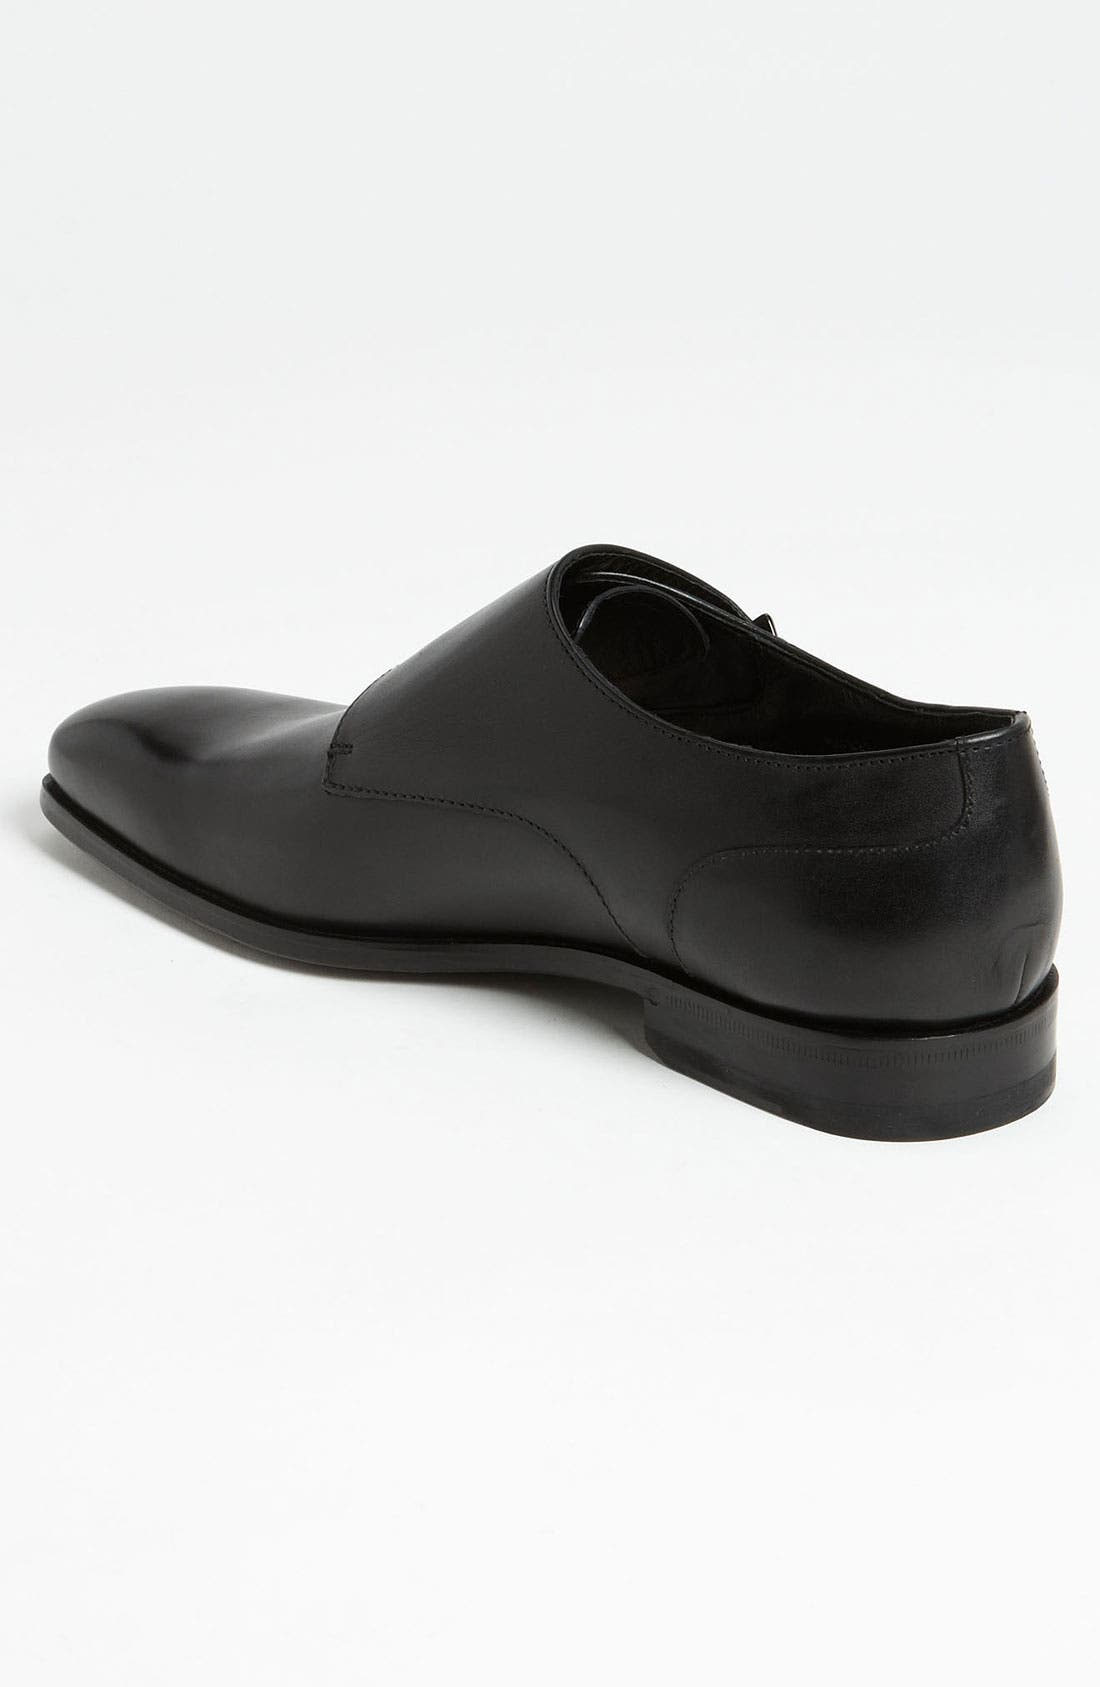 Alternate Image 2  - BOSS Black 'Copers' Double Monk Strap Slip-On